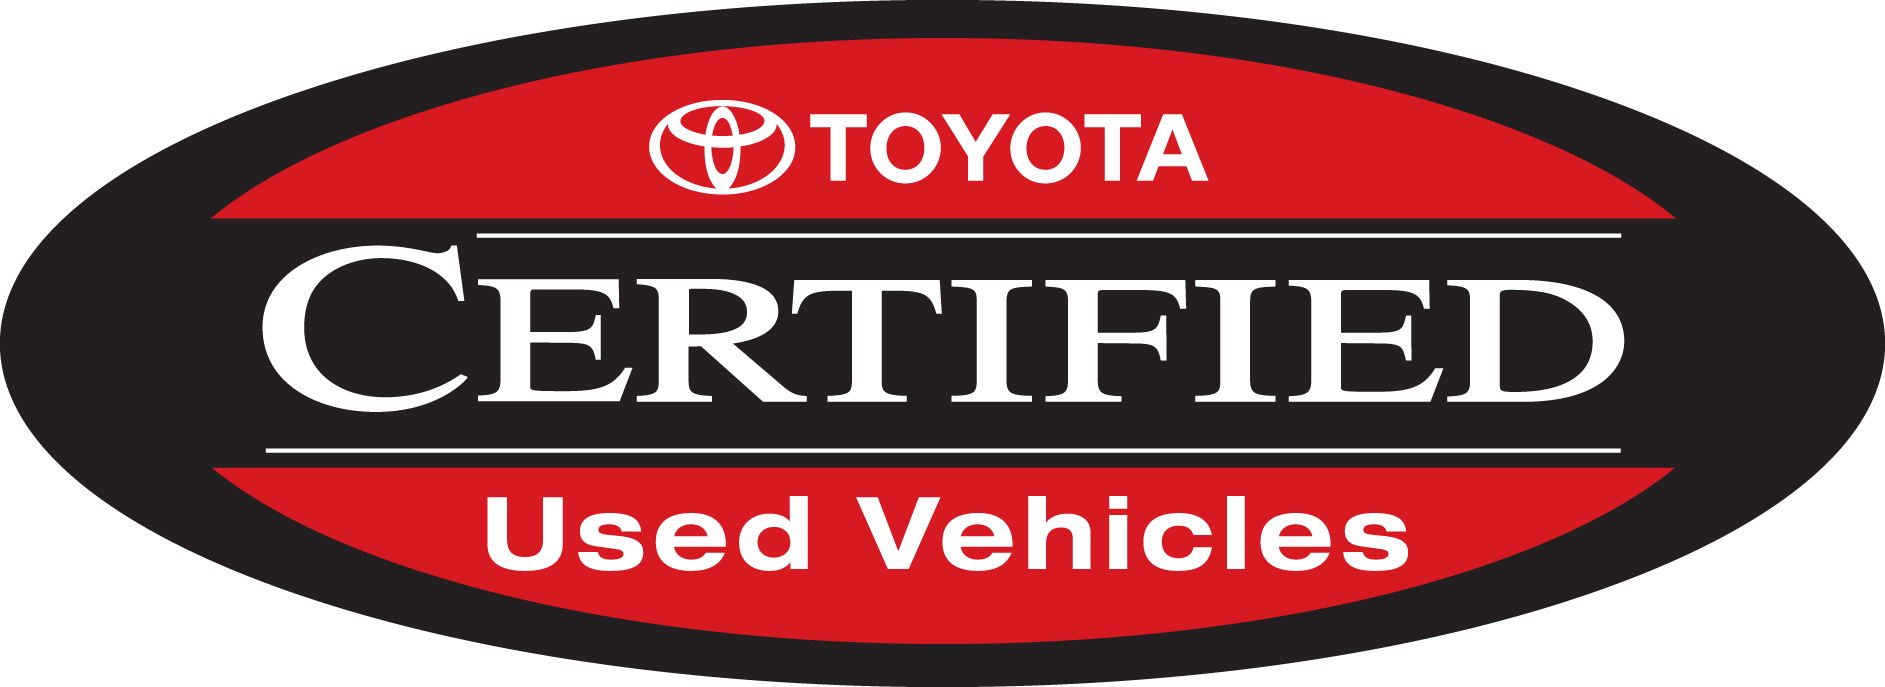 Toyota Certified Used Vehicles Logo